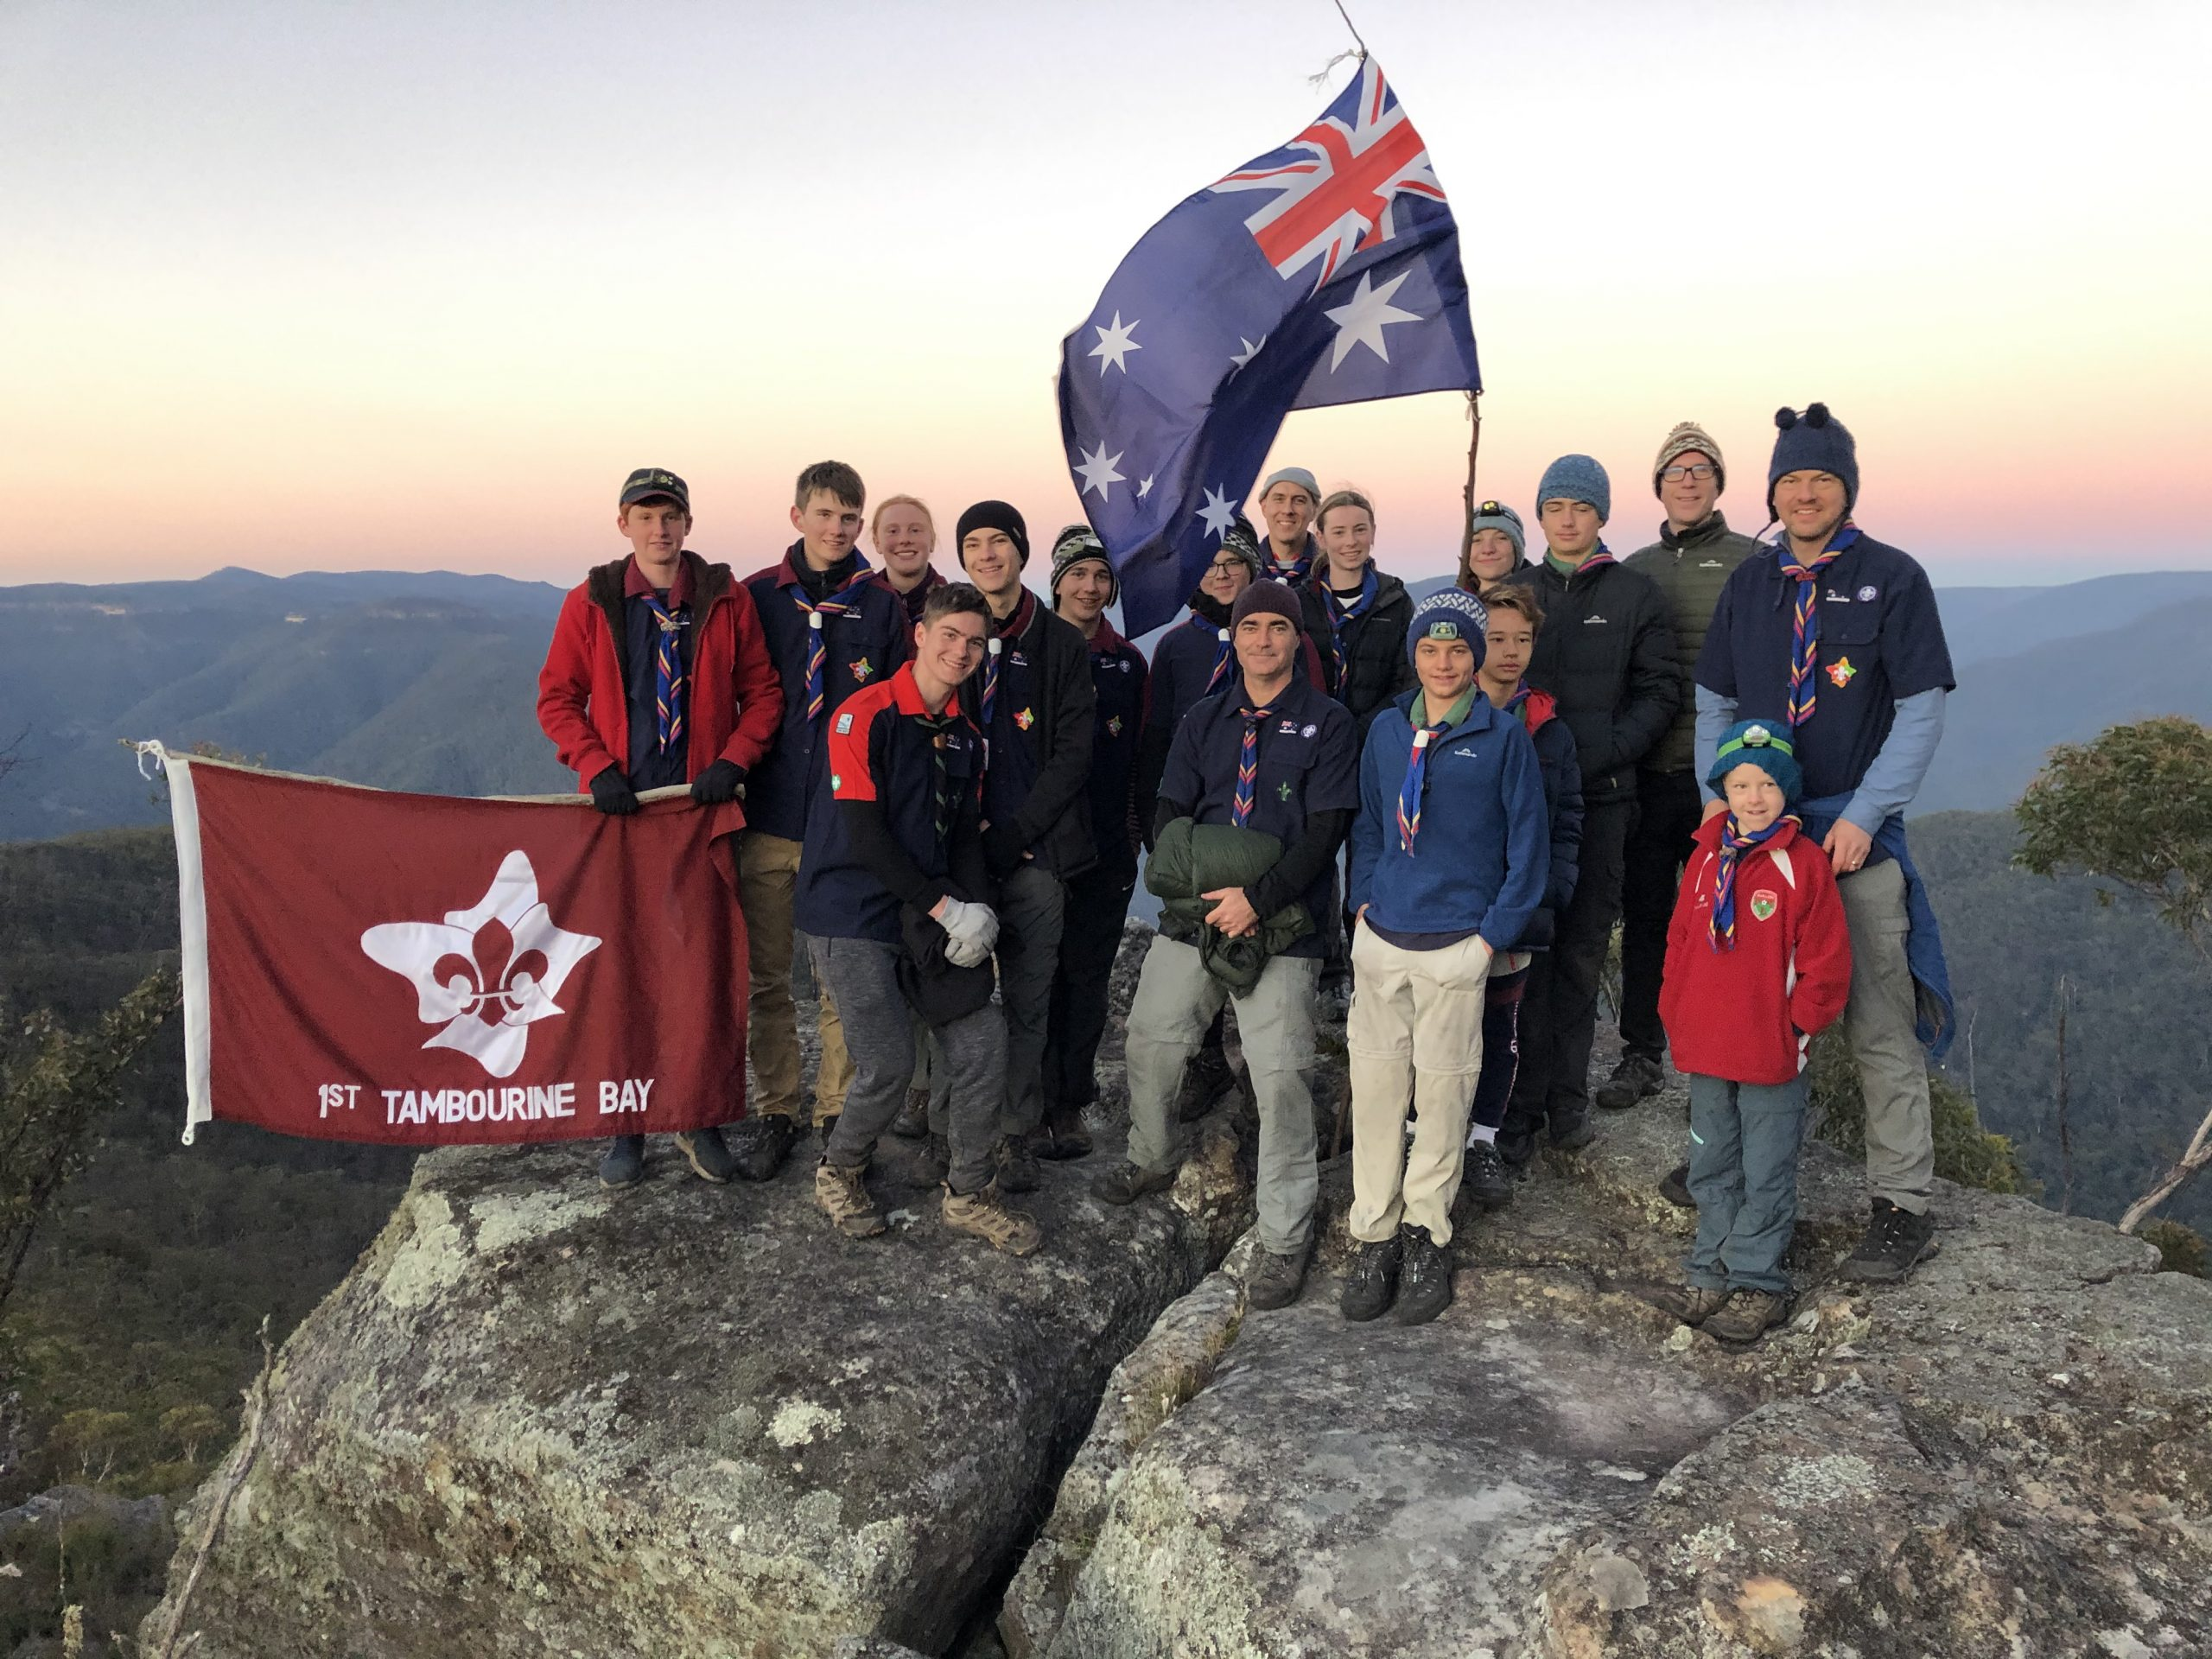 Tambourine Bay Hikes to Splendour Rock in the Blue Mountains for ANZAC Day Dawn Service